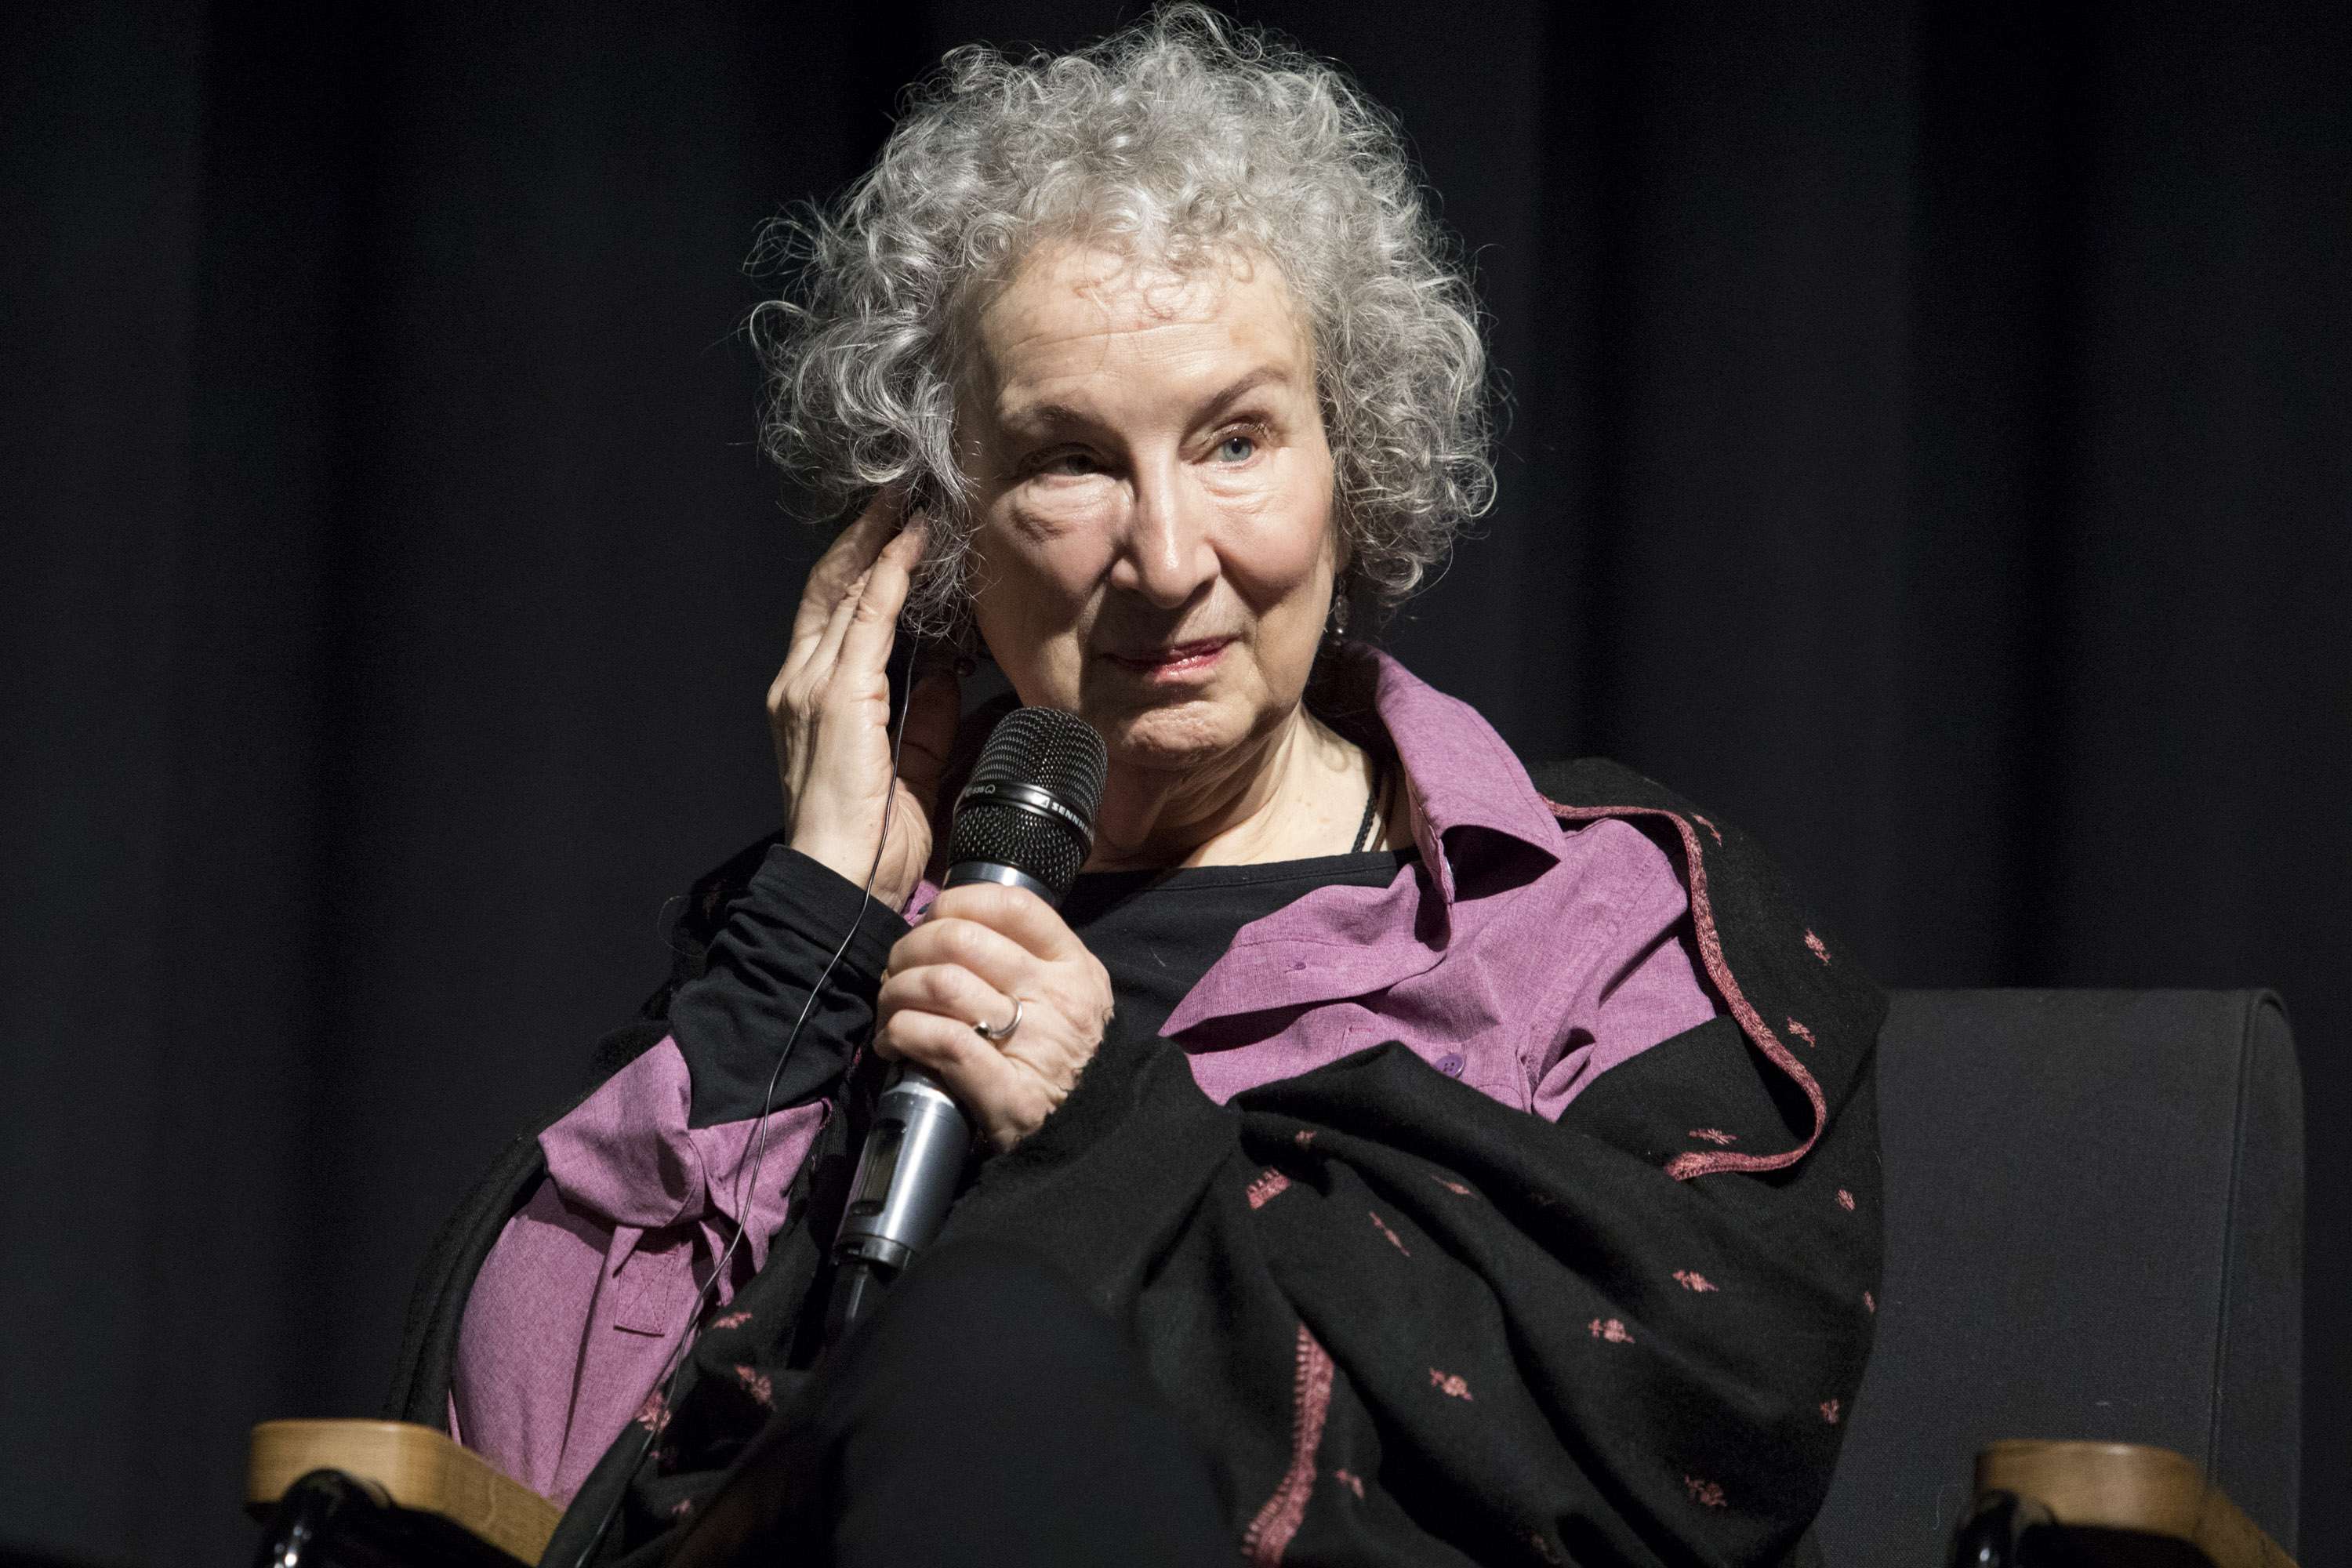 Why Handmaid's Tale author Margaret Atwood is facing #MeToo backlash